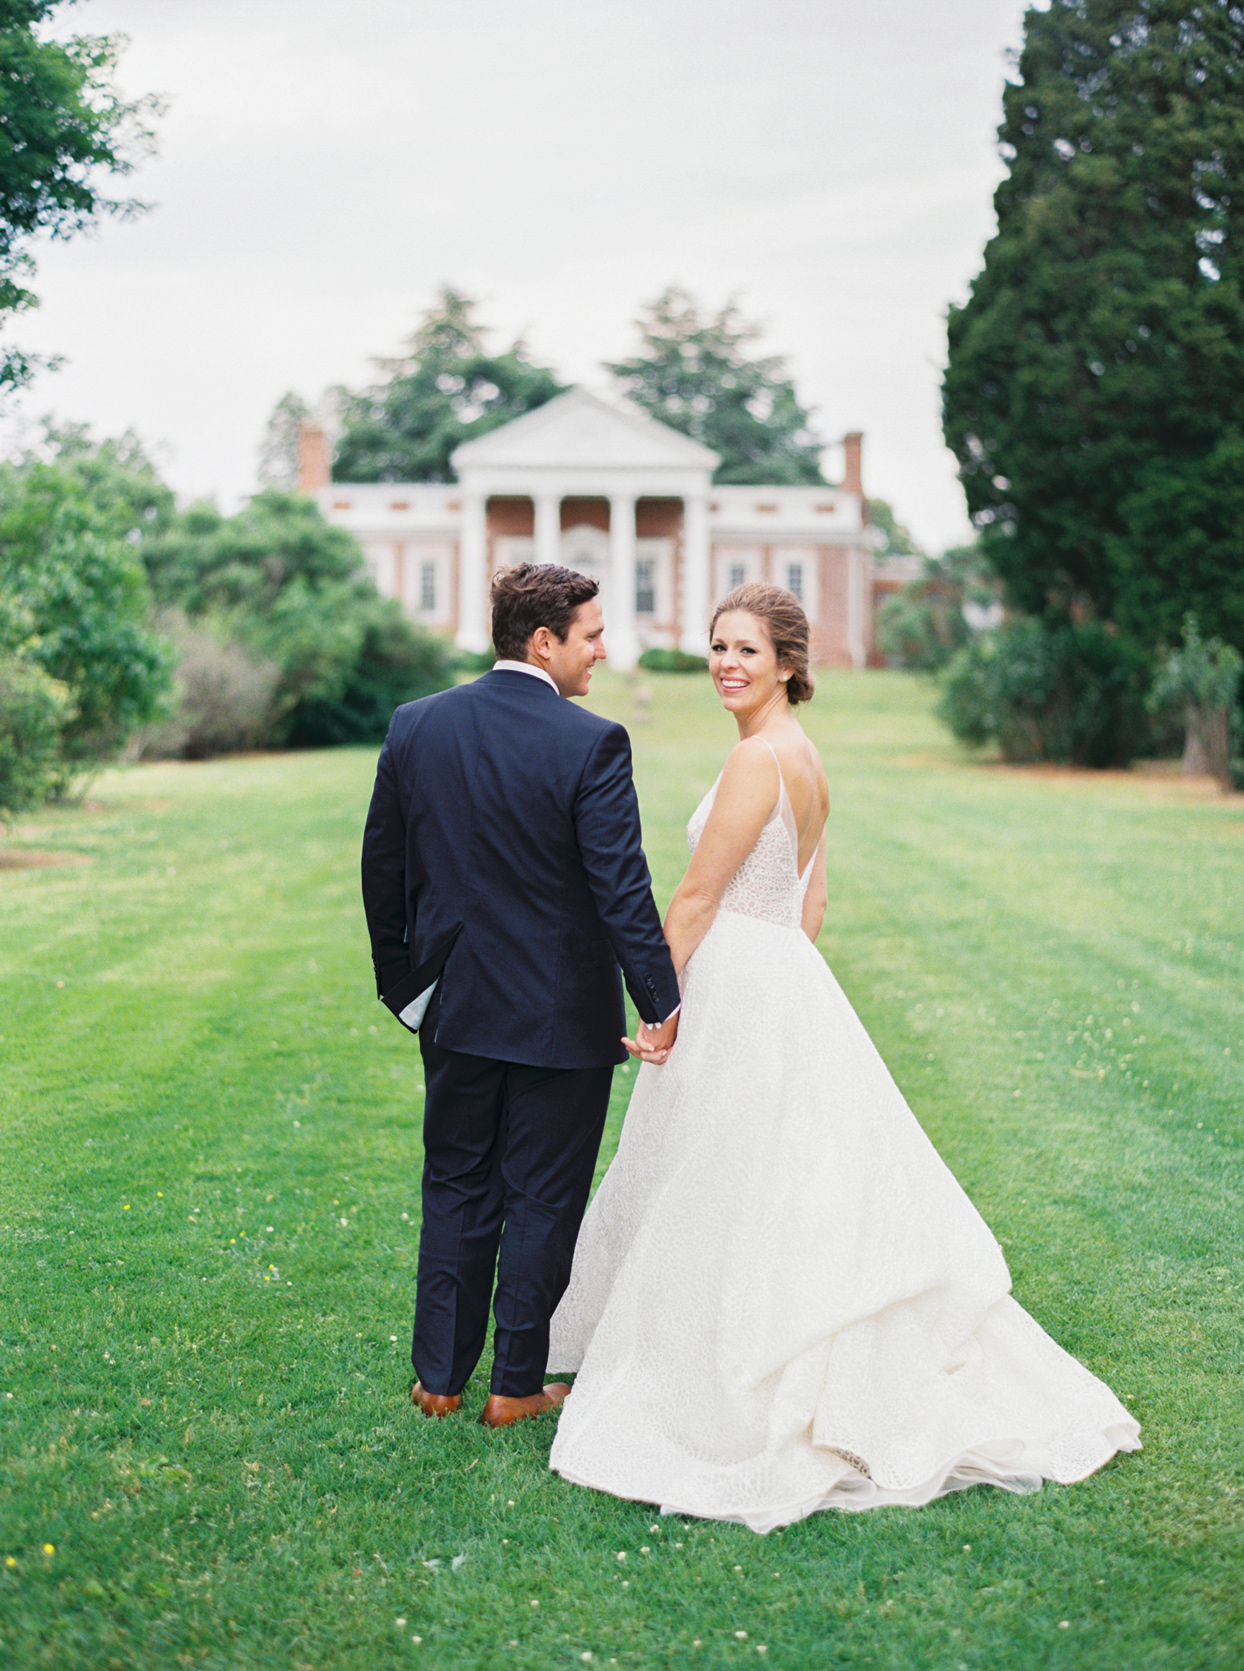 bride and groom smiling holding hands outside on green lawn